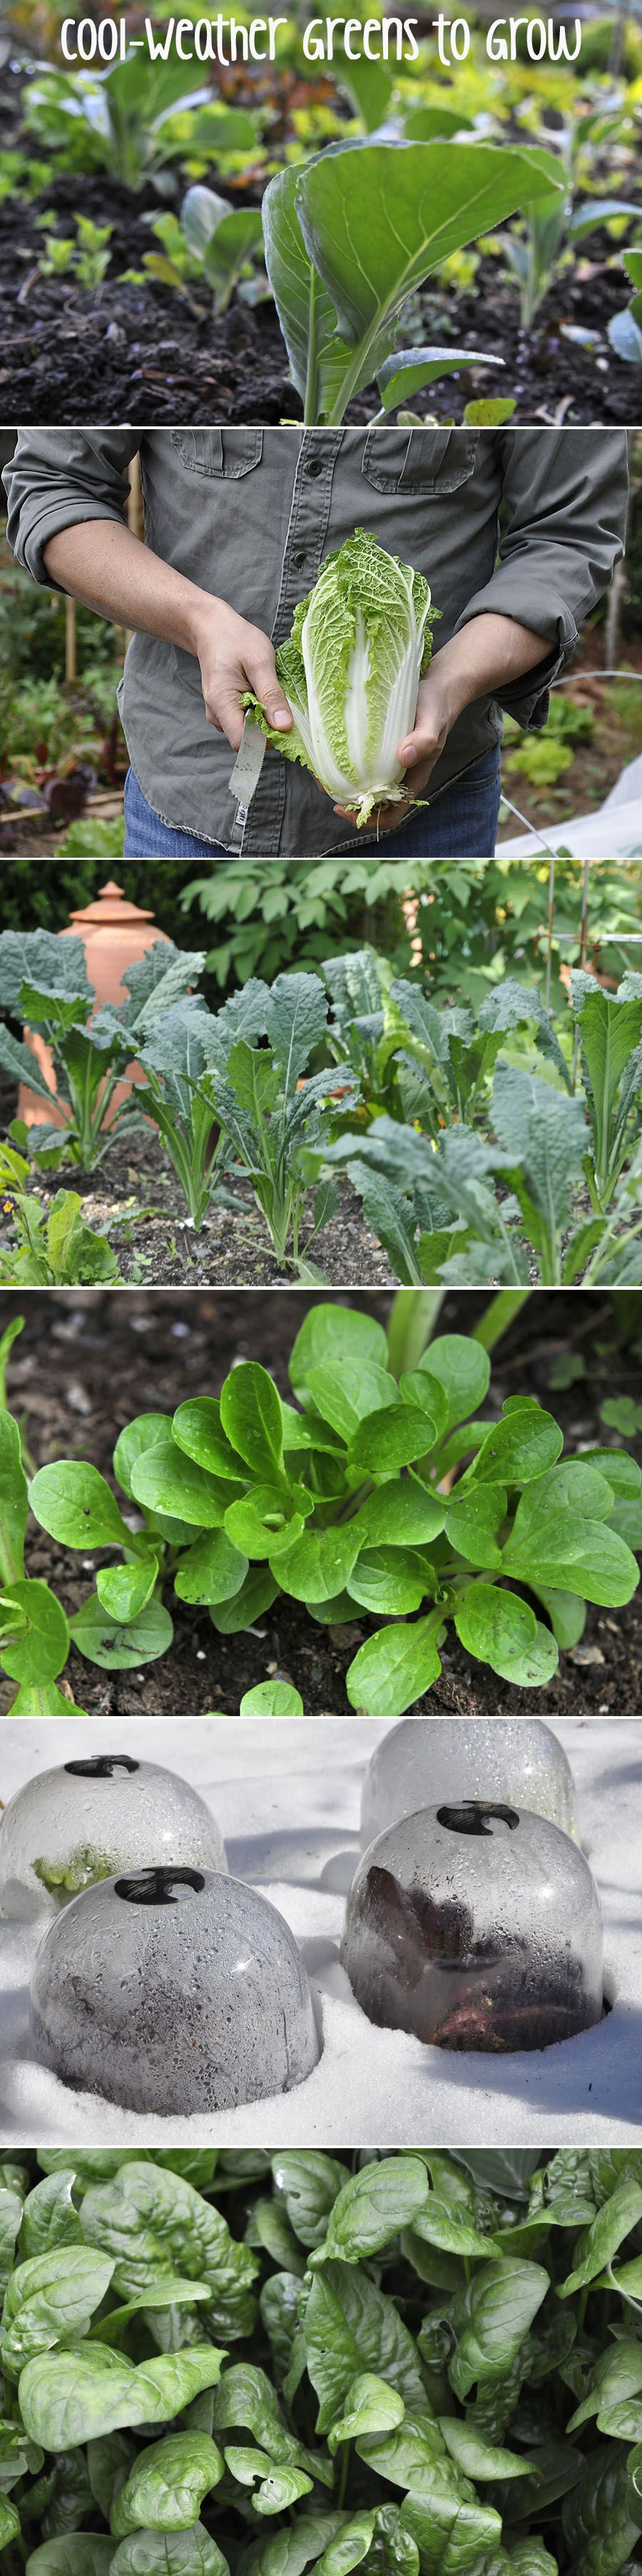 extend your home garden harvest by growing cool weather greens